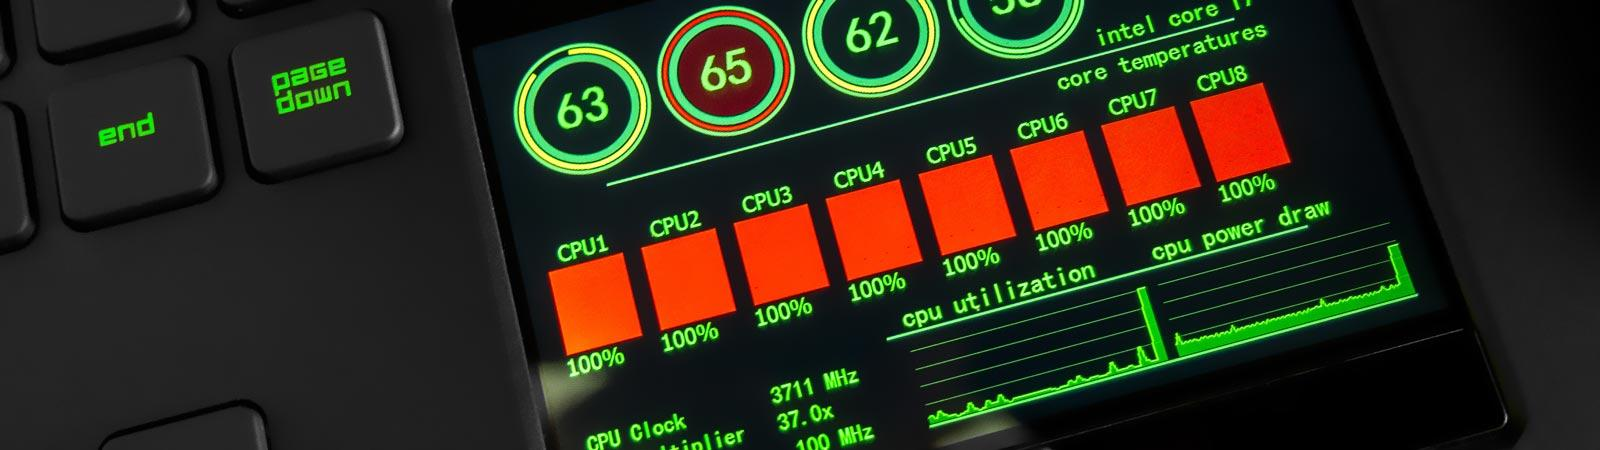 Aida64 The Ultimate System Information Diagnostics And